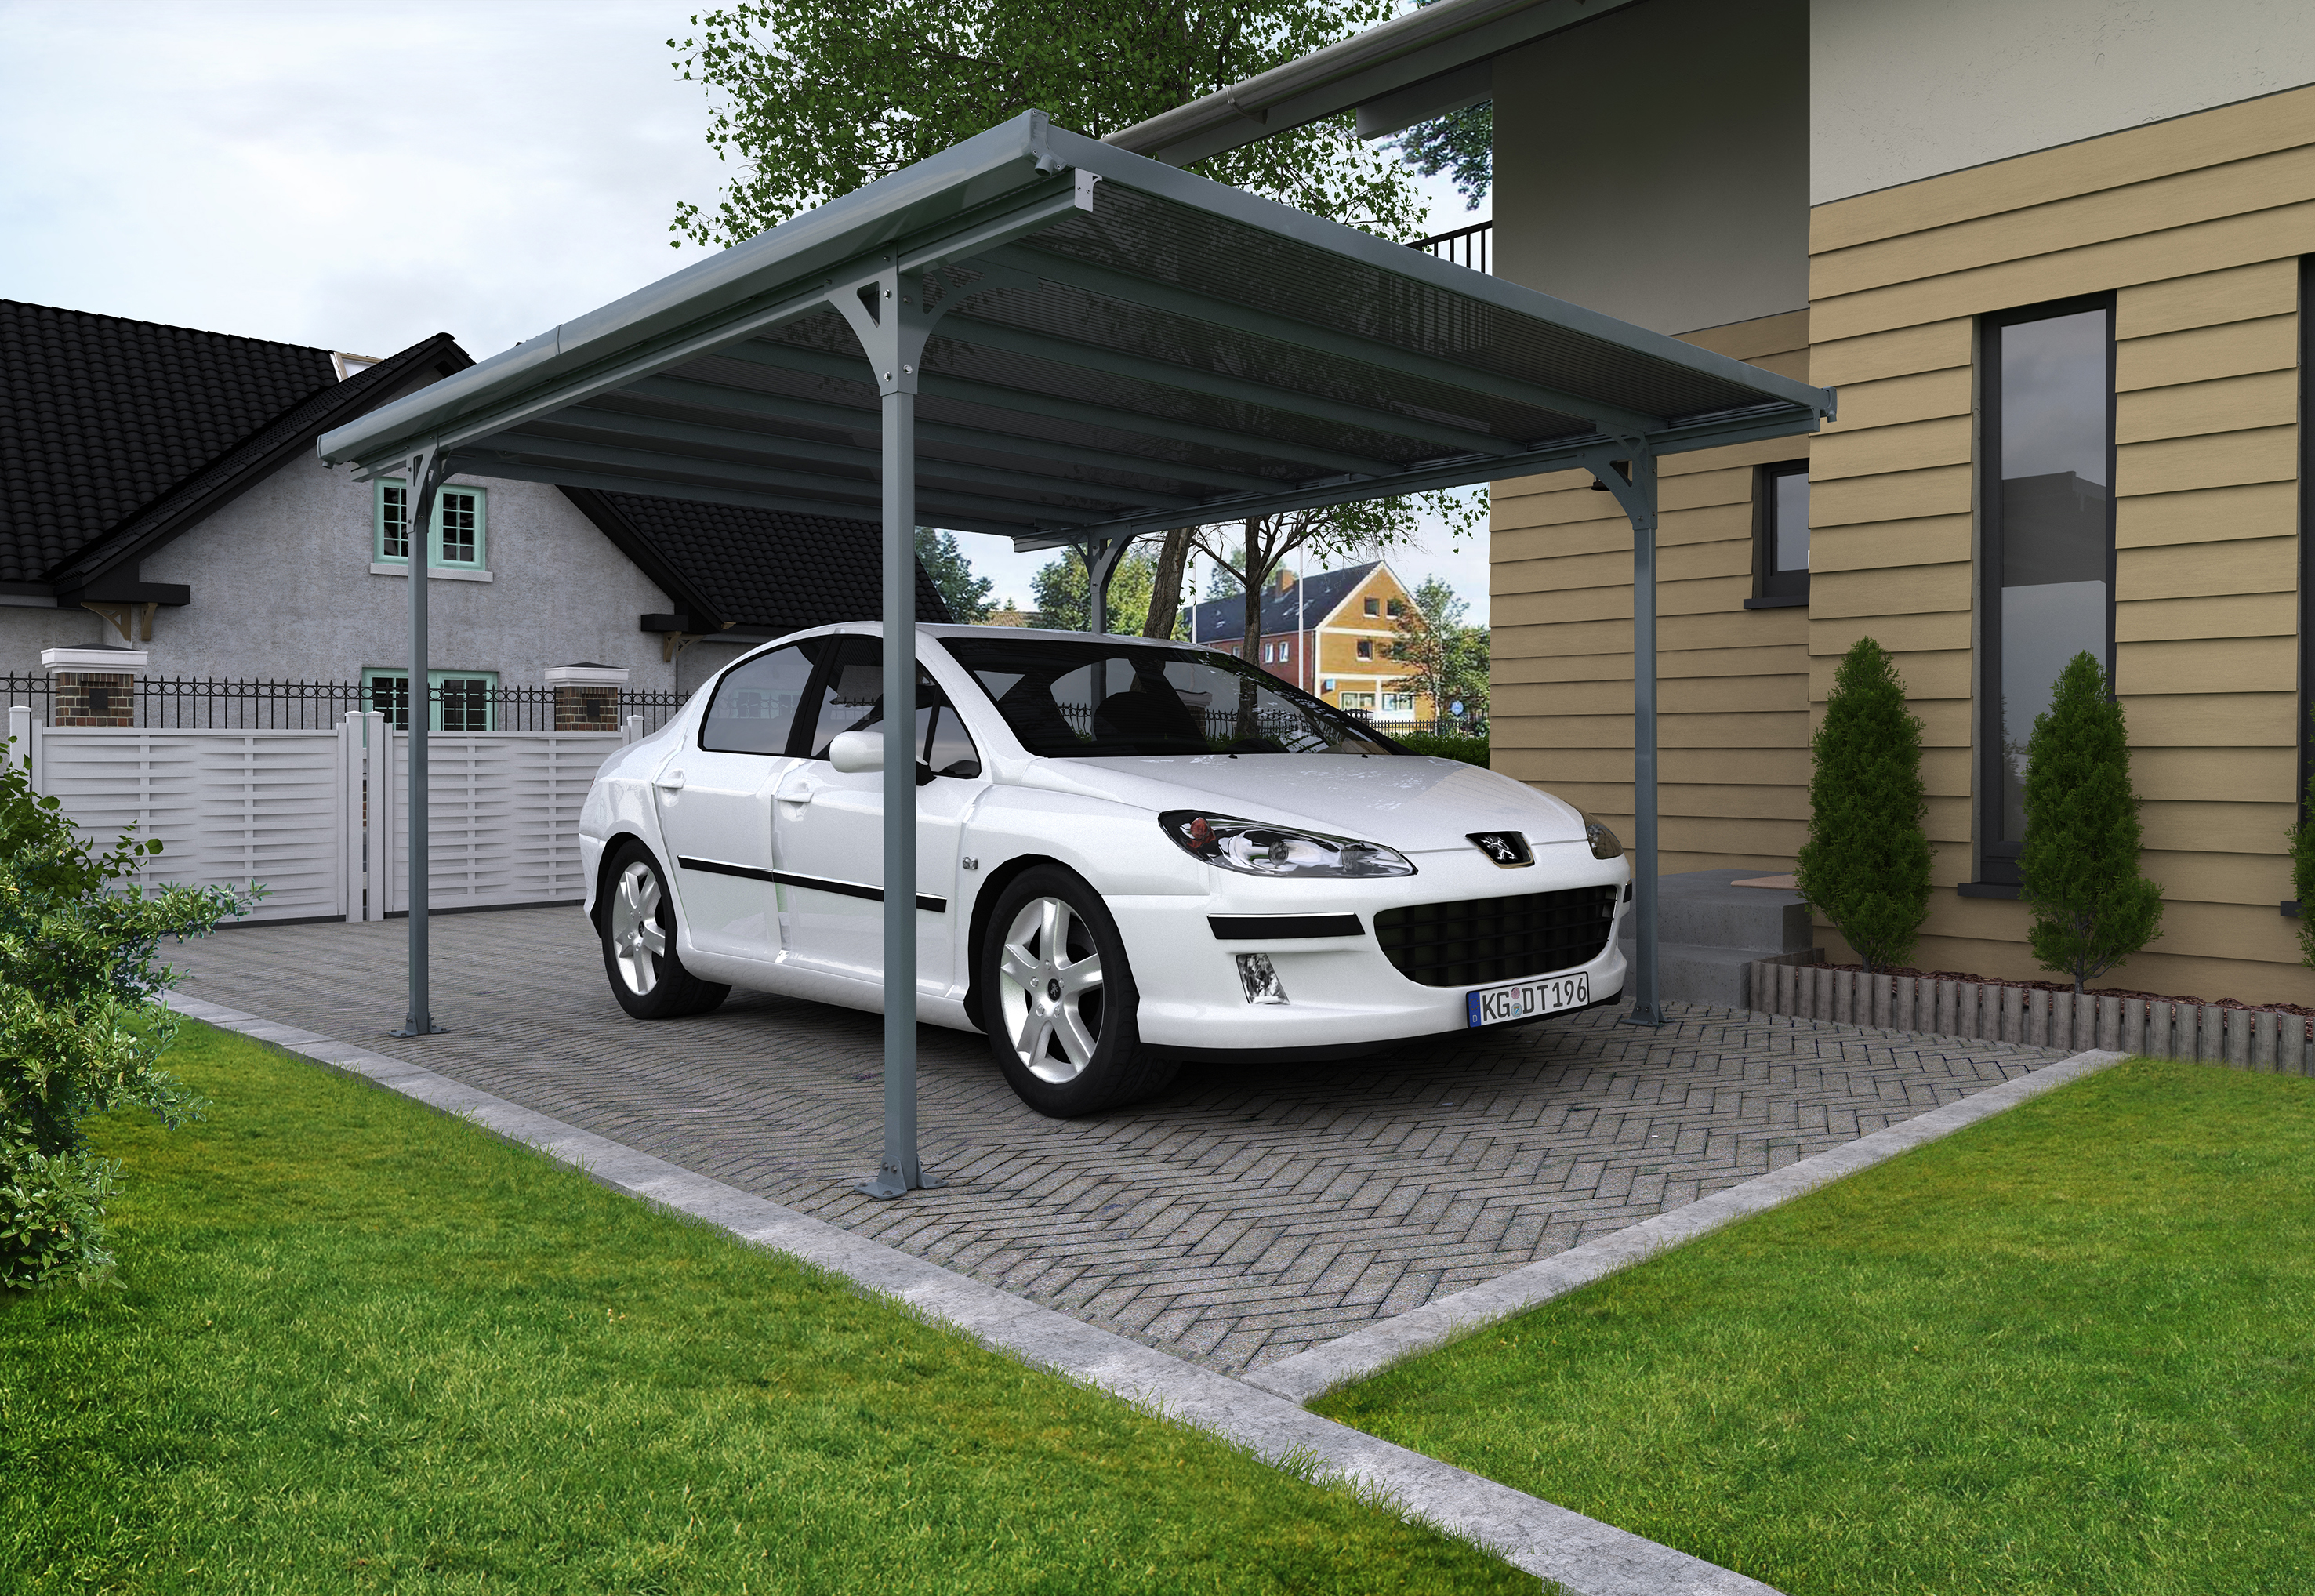 carport verona 5000 en alu 1 voiture commande a retirer au magasin jardipromo palram verona. Black Bedroom Furniture Sets. Home Design Ideas